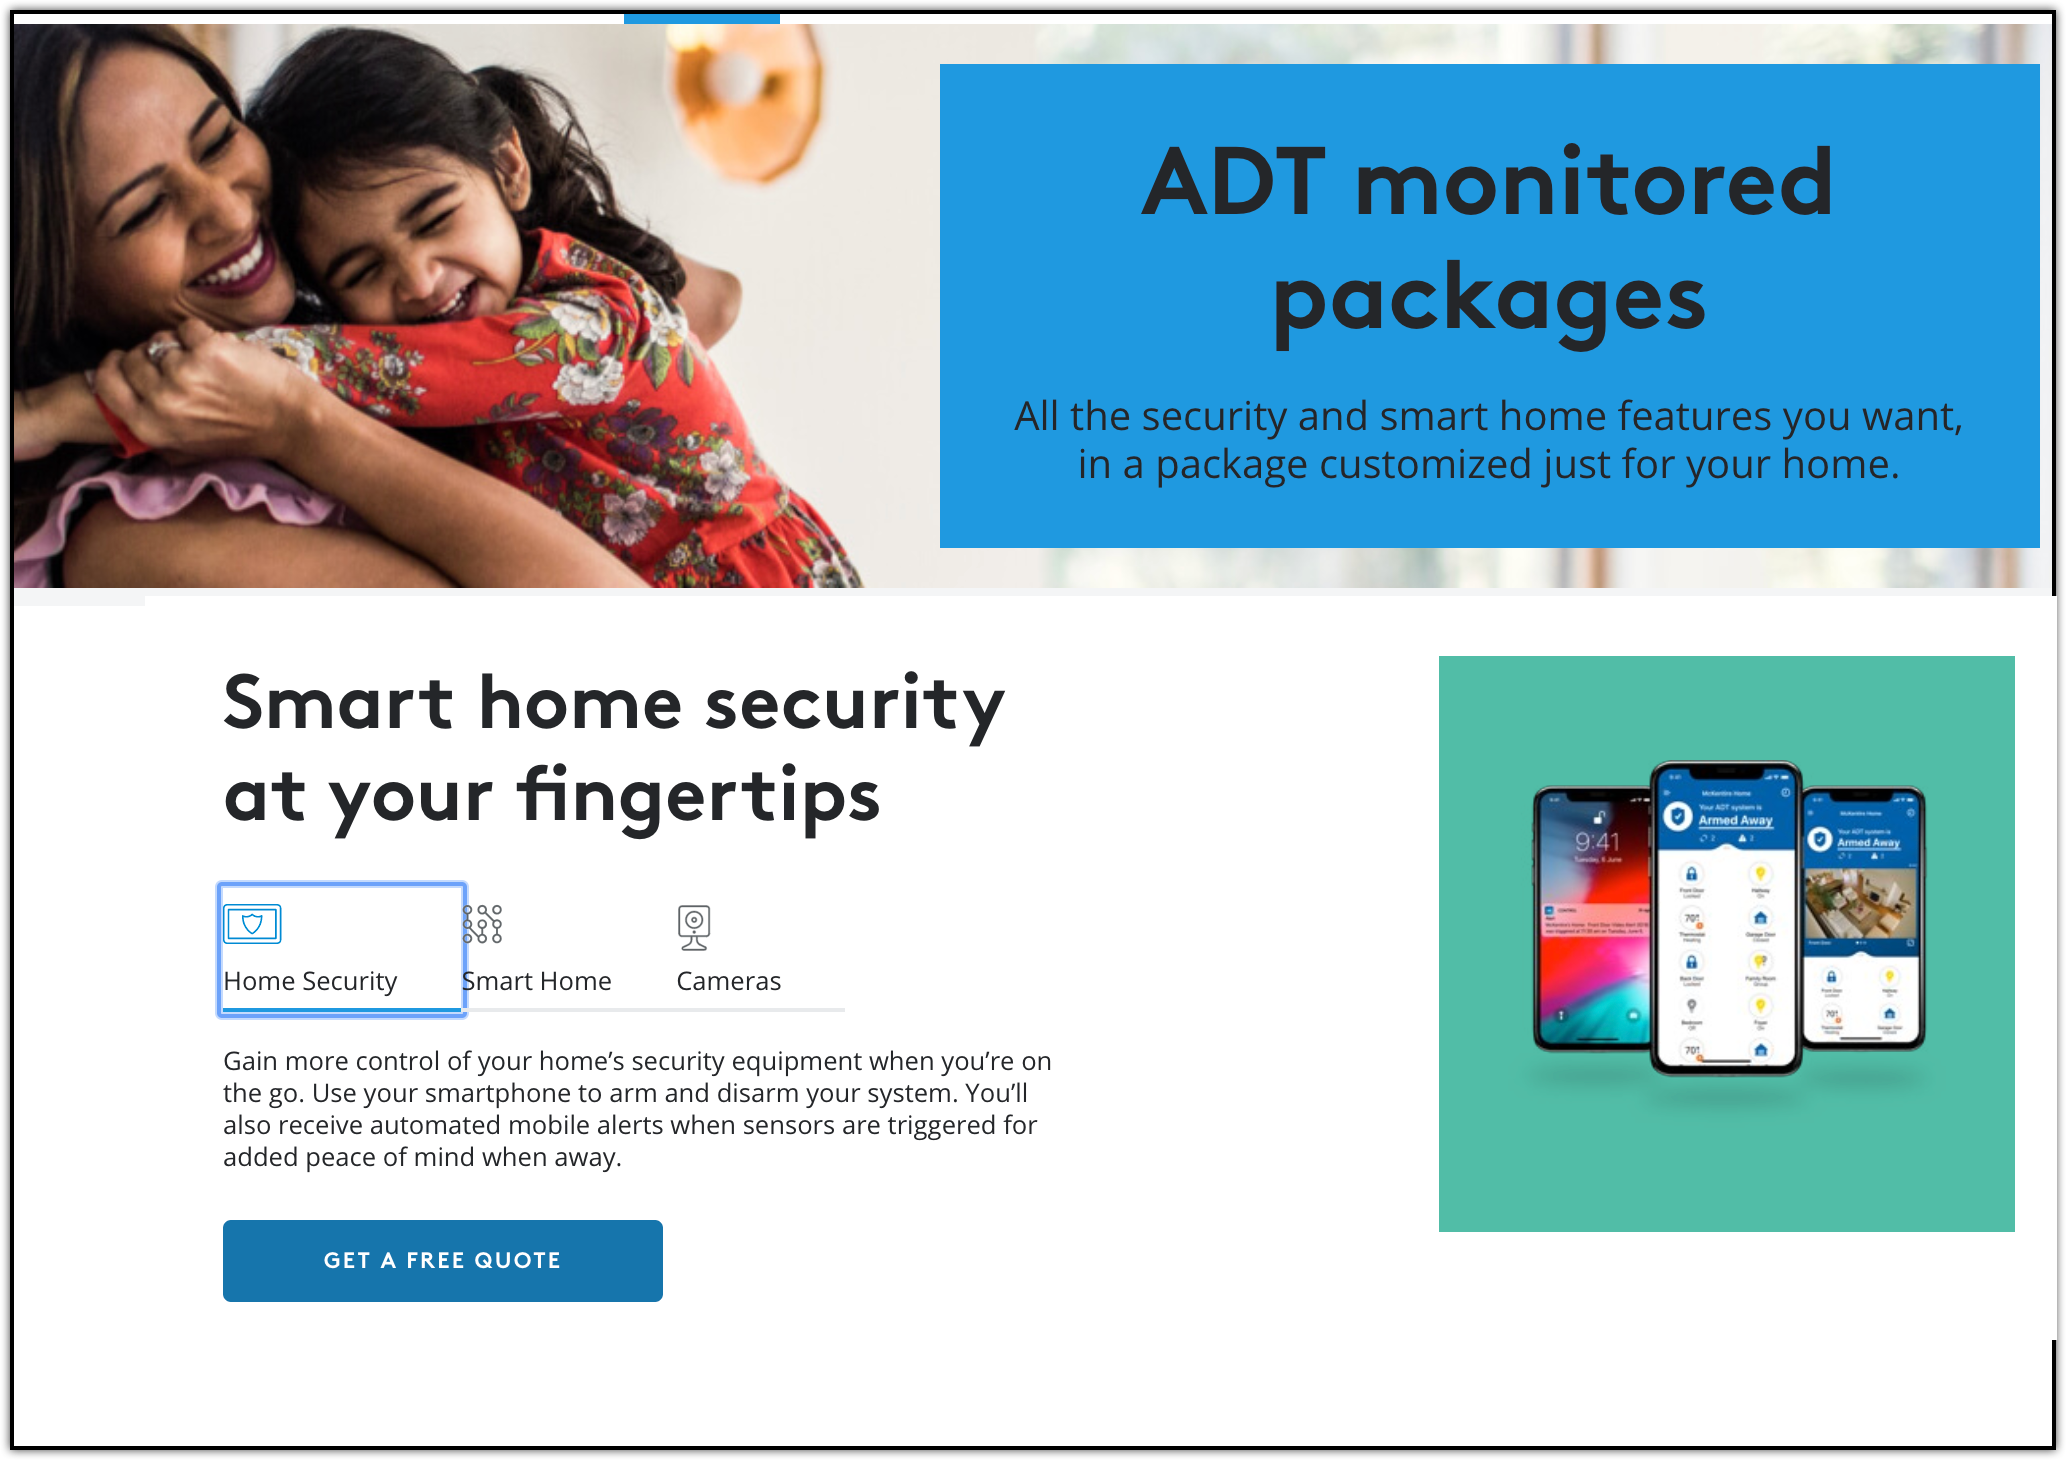 adt home security options